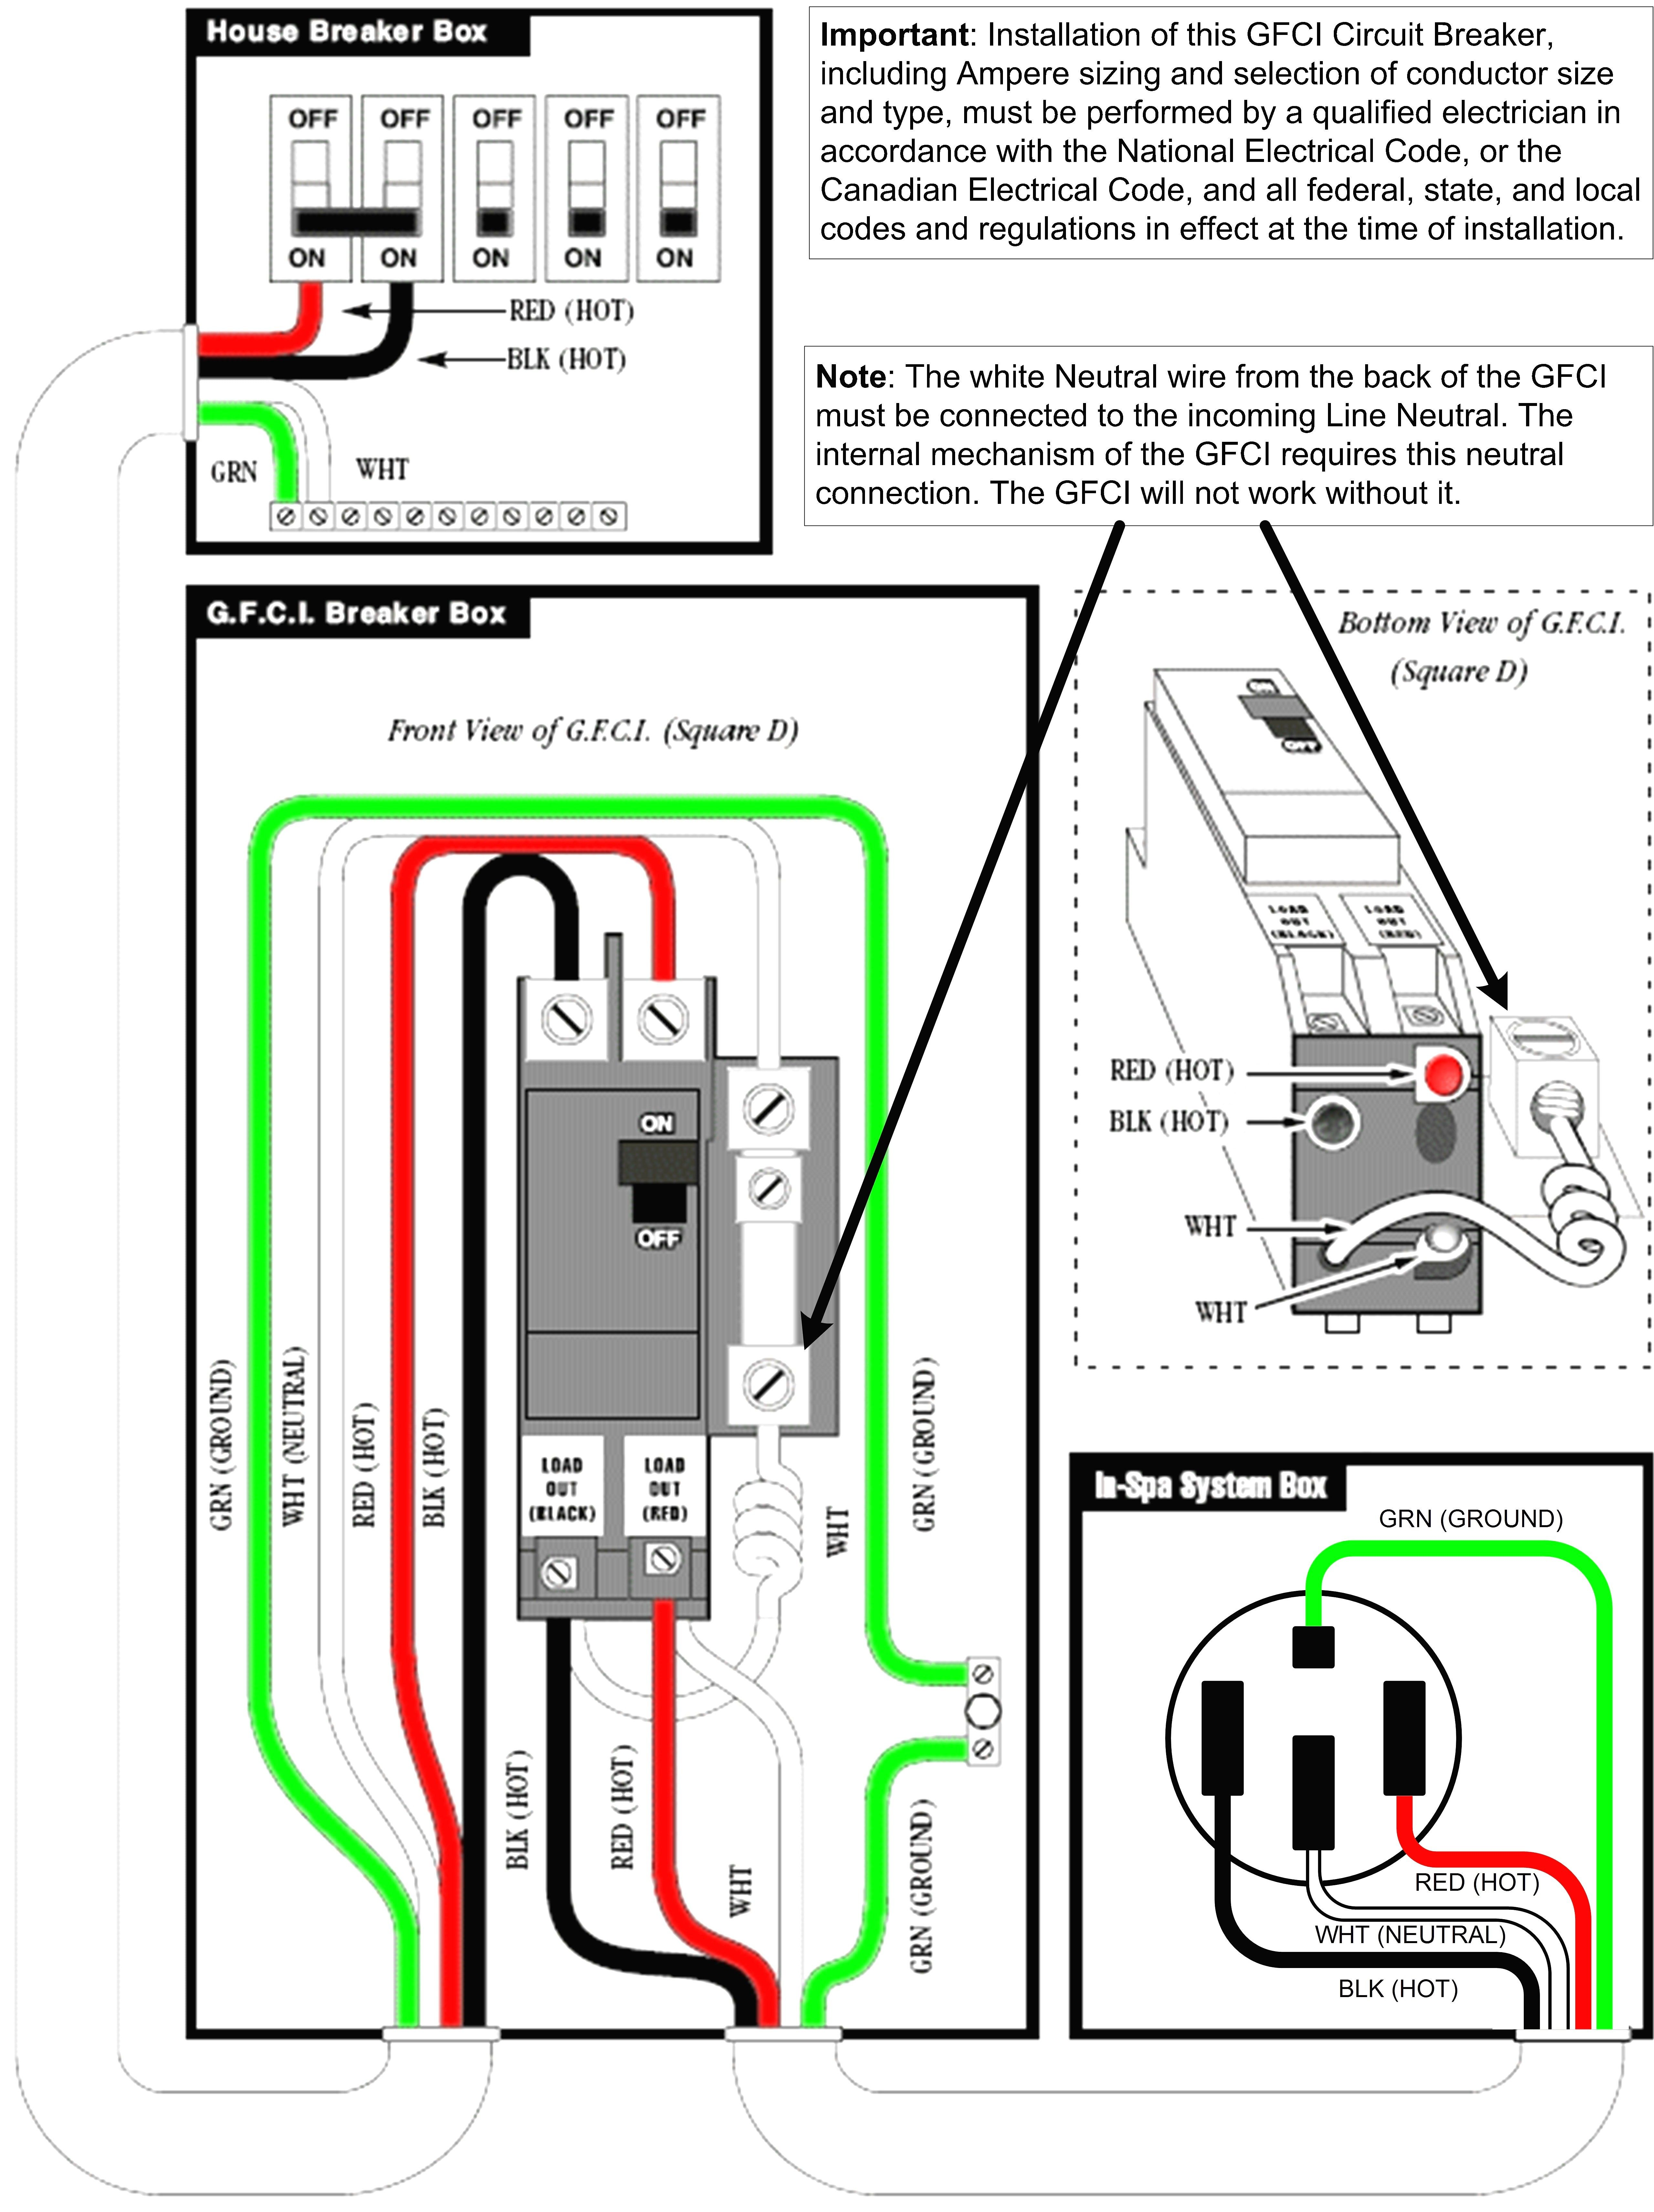 New Gfci Wiring Diagram For Hot Tub Diagram Diagramsample Diagramtemplate Wiringdiagram Diagramchar Electrical Panel Wiring Outlet Wiring Electrical Panel